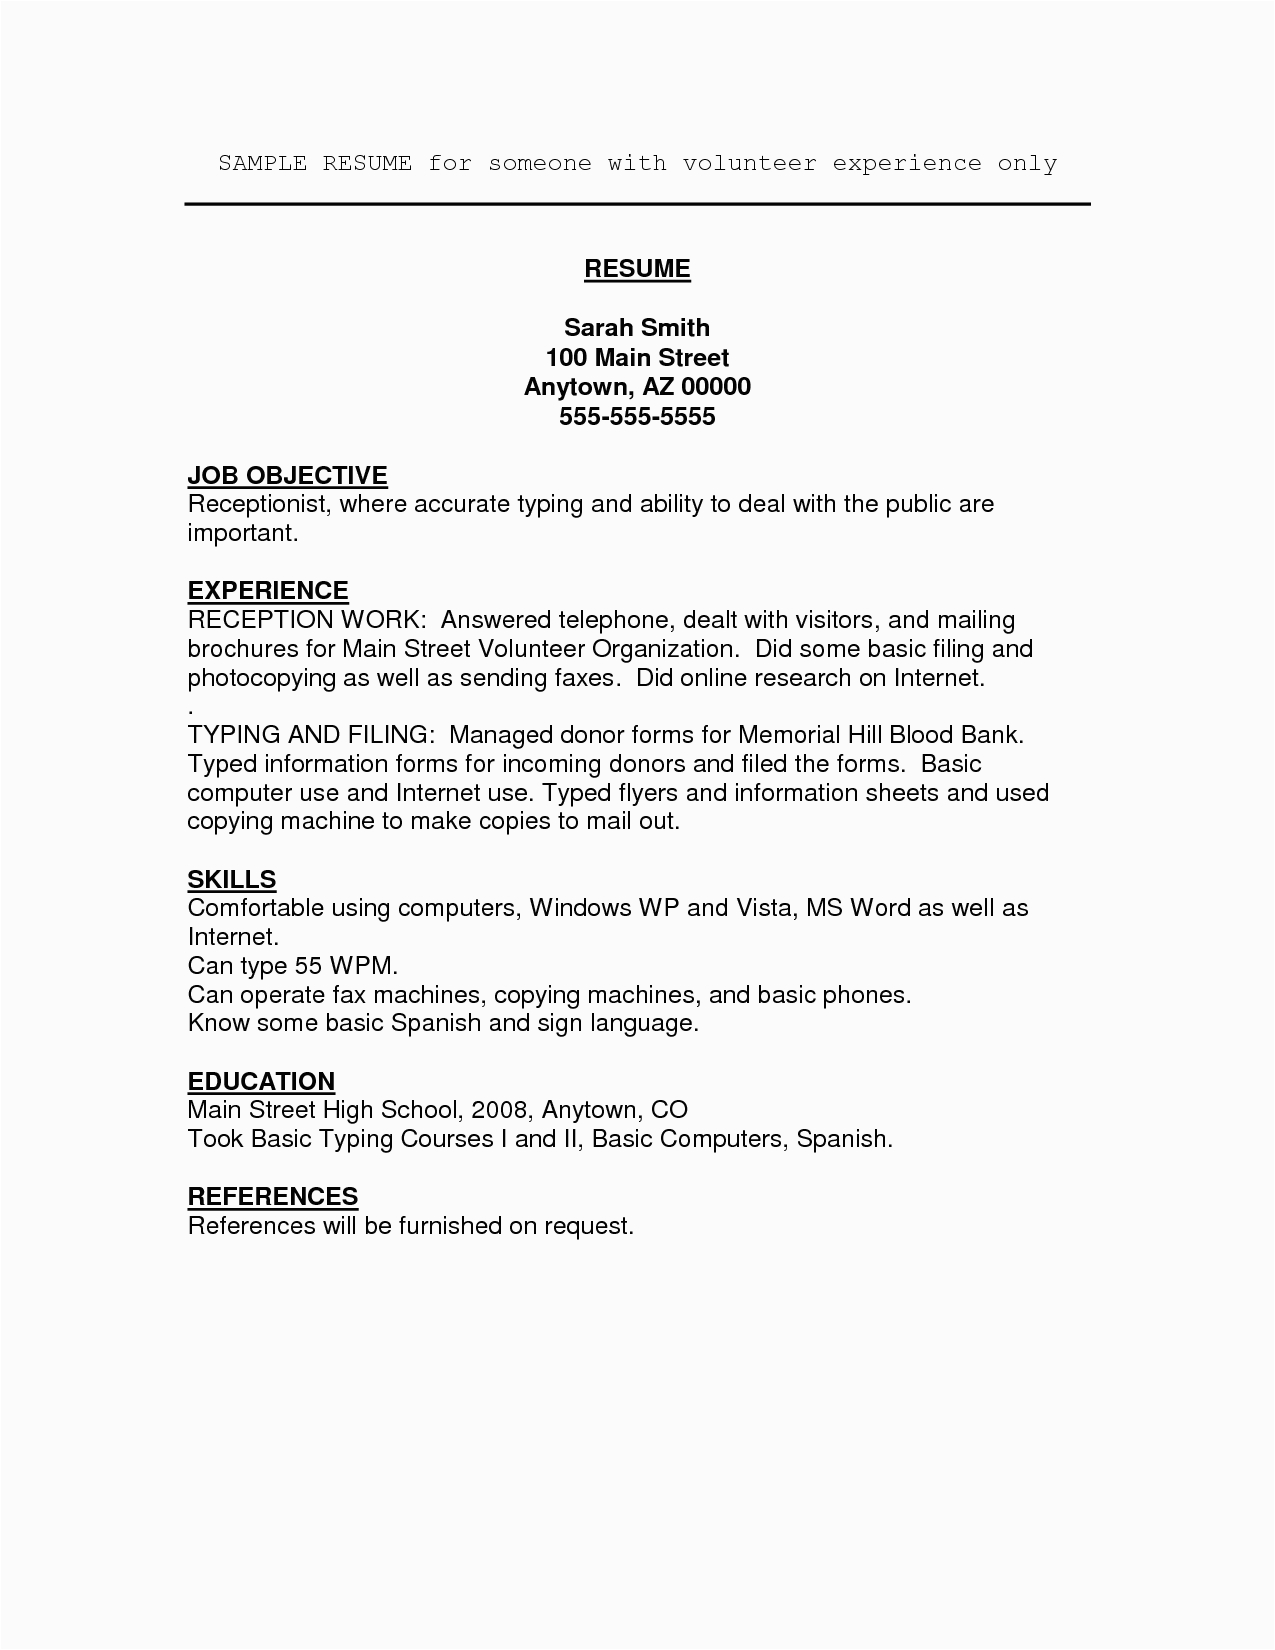 Sample Resume for Highschool Students with Volunteer Experience Job Resume Volunteer Experience Umecareer